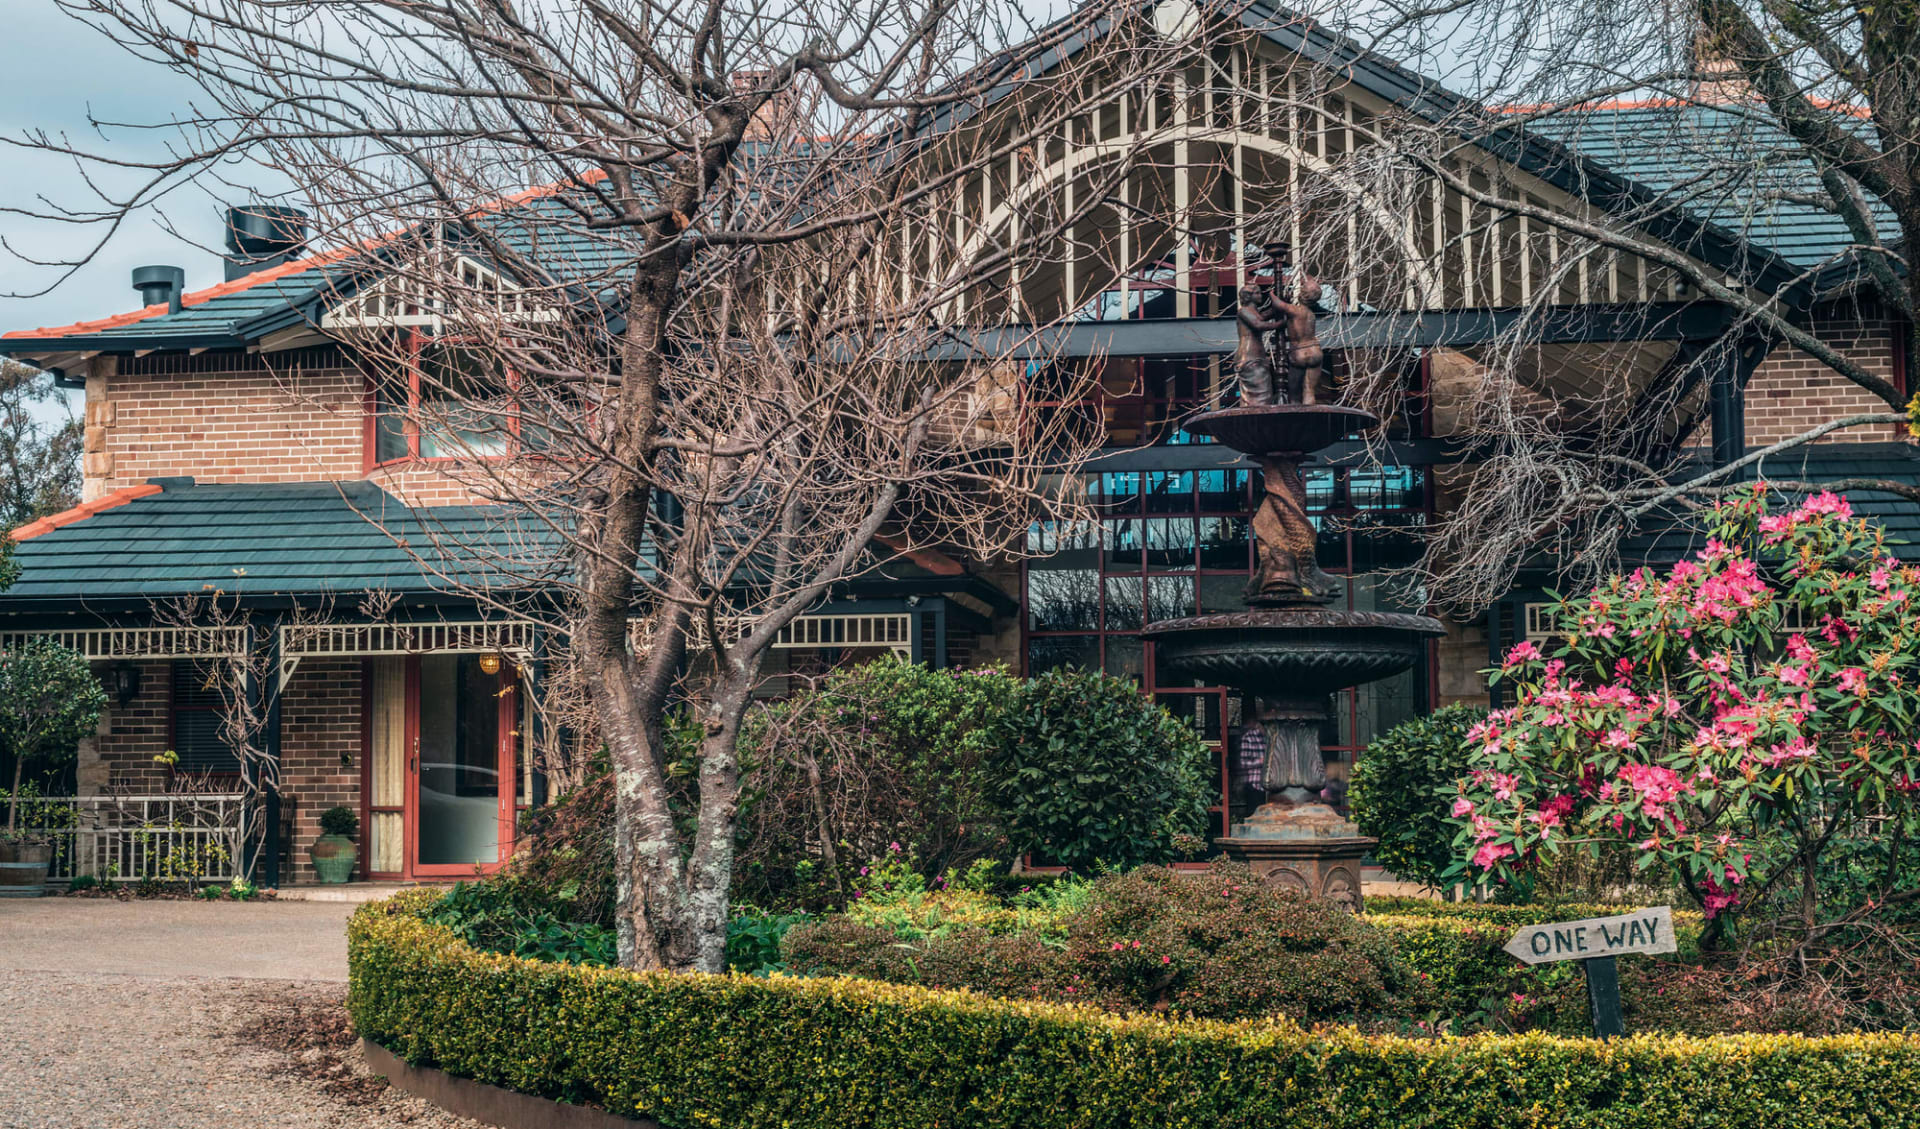 Echoes Boutique Hotel in Blue Mountains:  Echoes Boutique Hotel - Blick auf Haupteingang